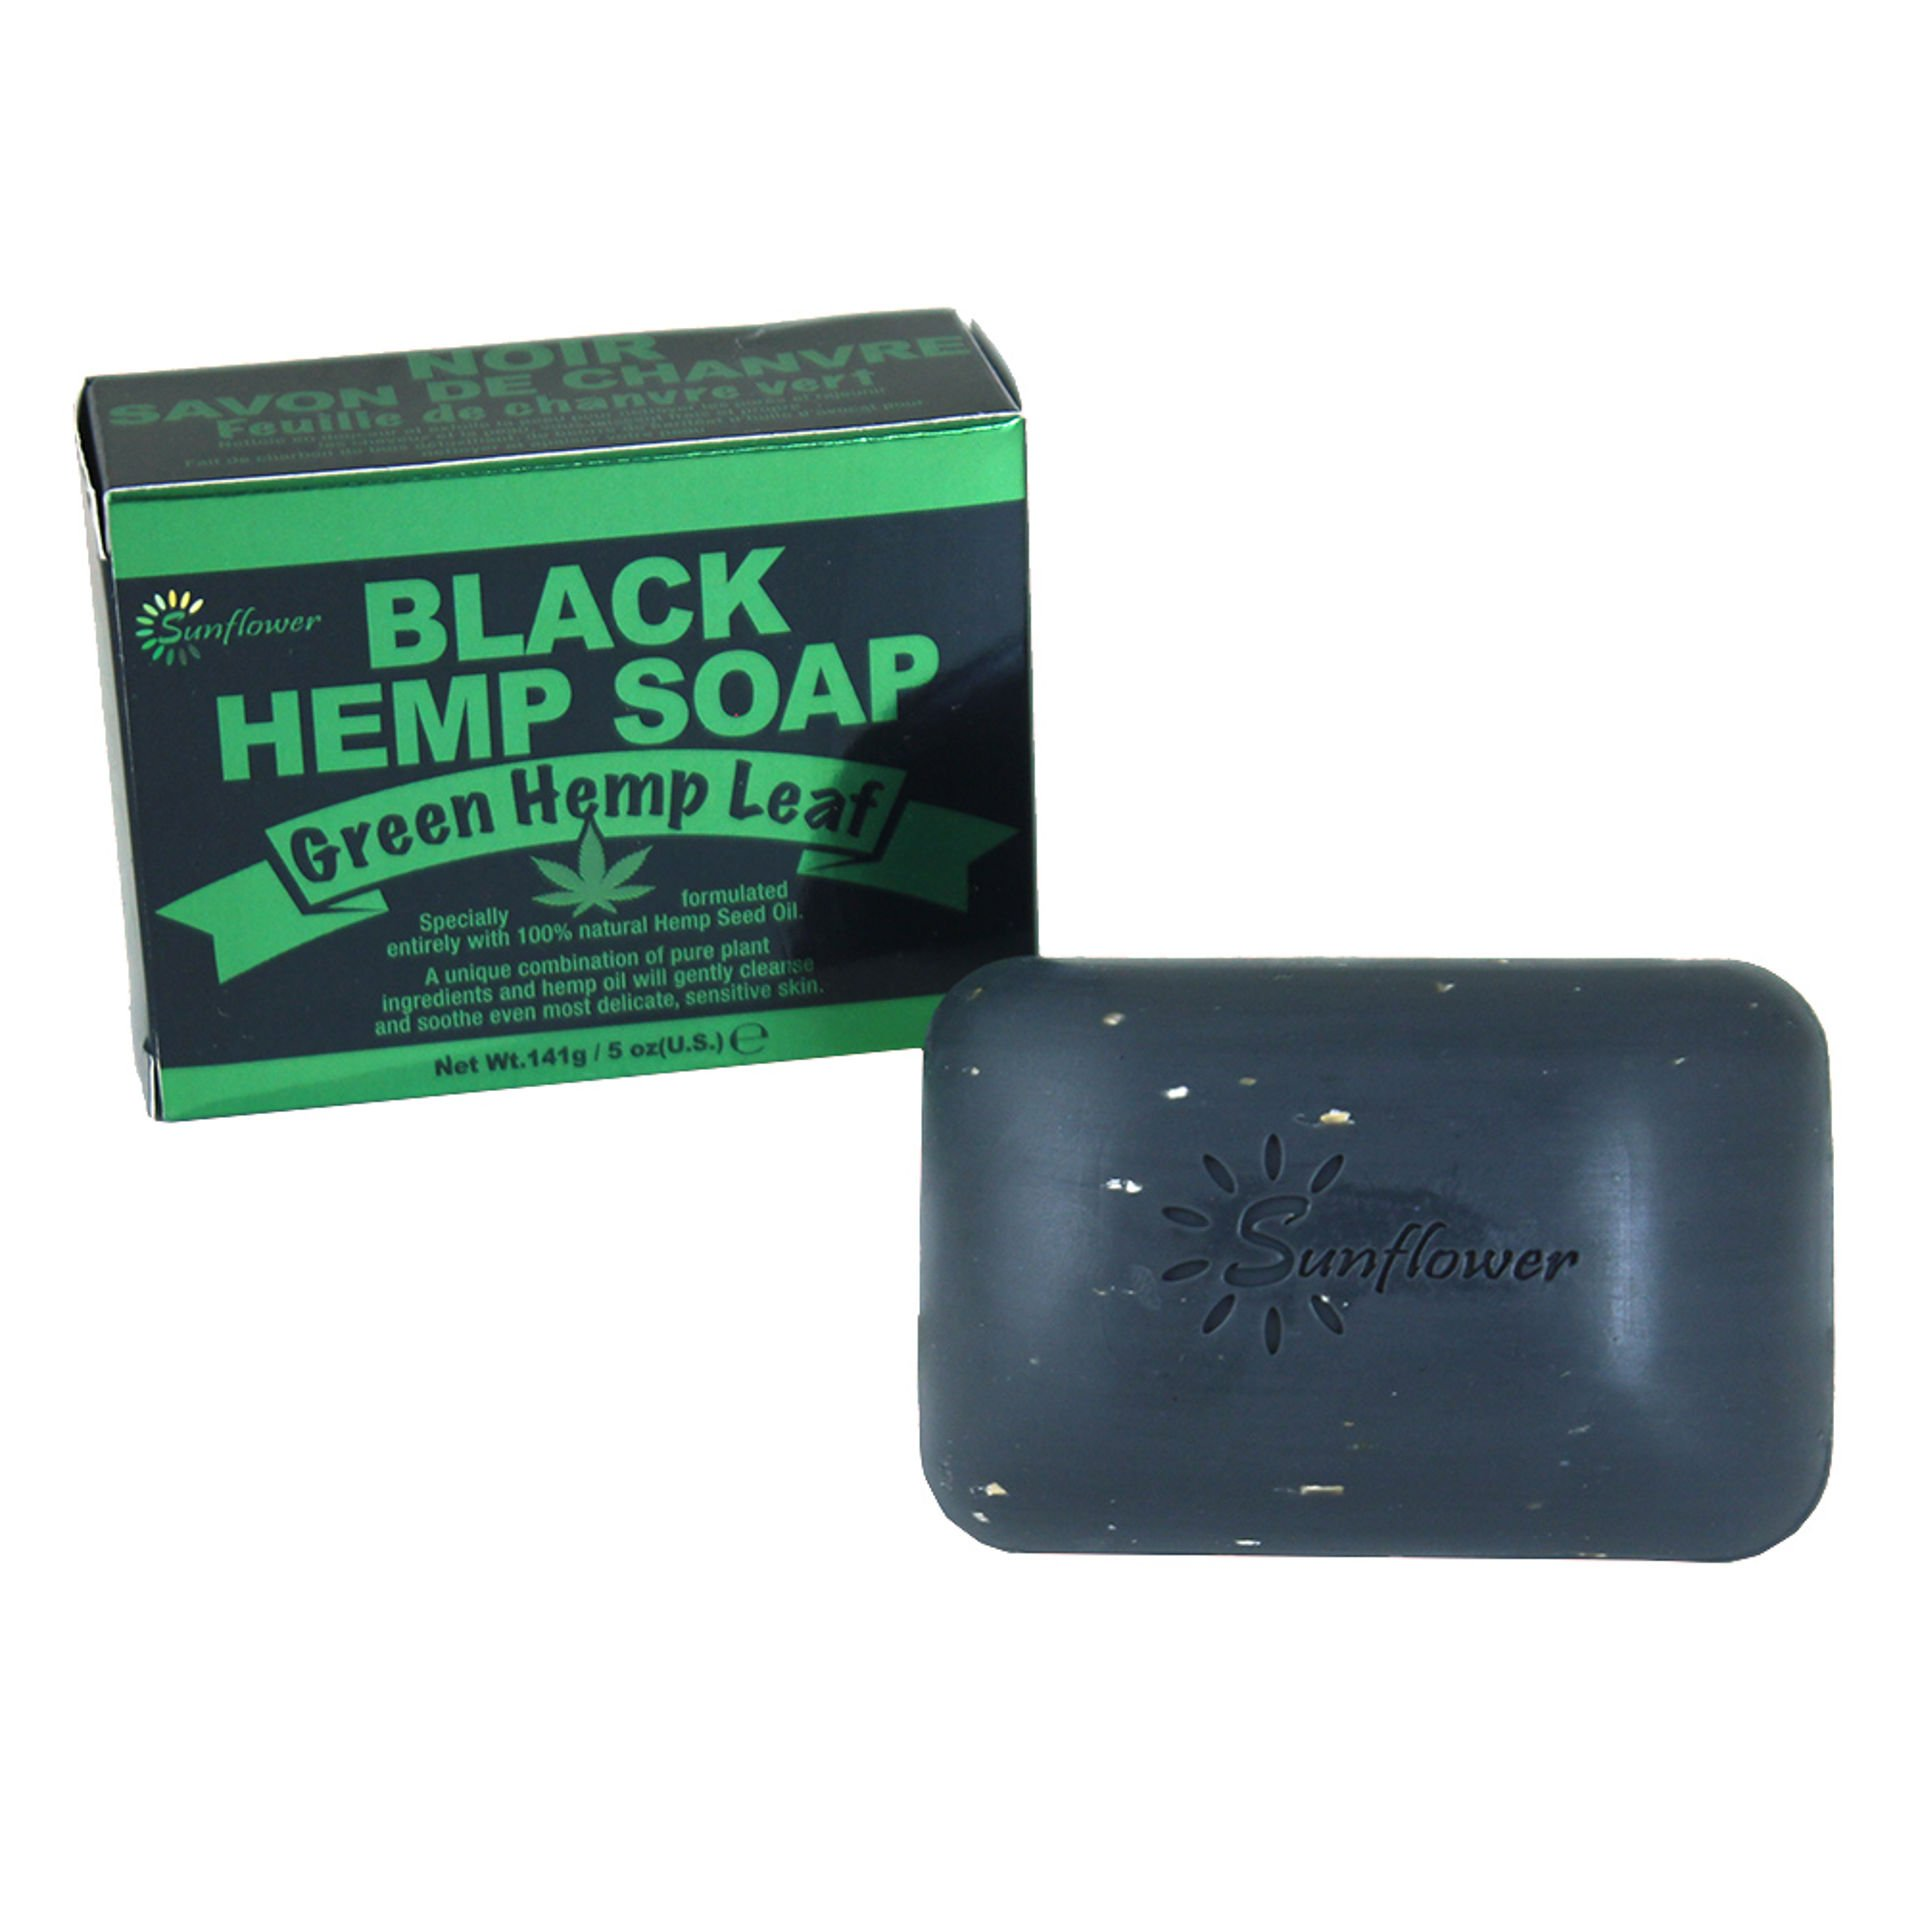 Picture of Green Hemp Leaf Black Hemp Soap - 5 oz.